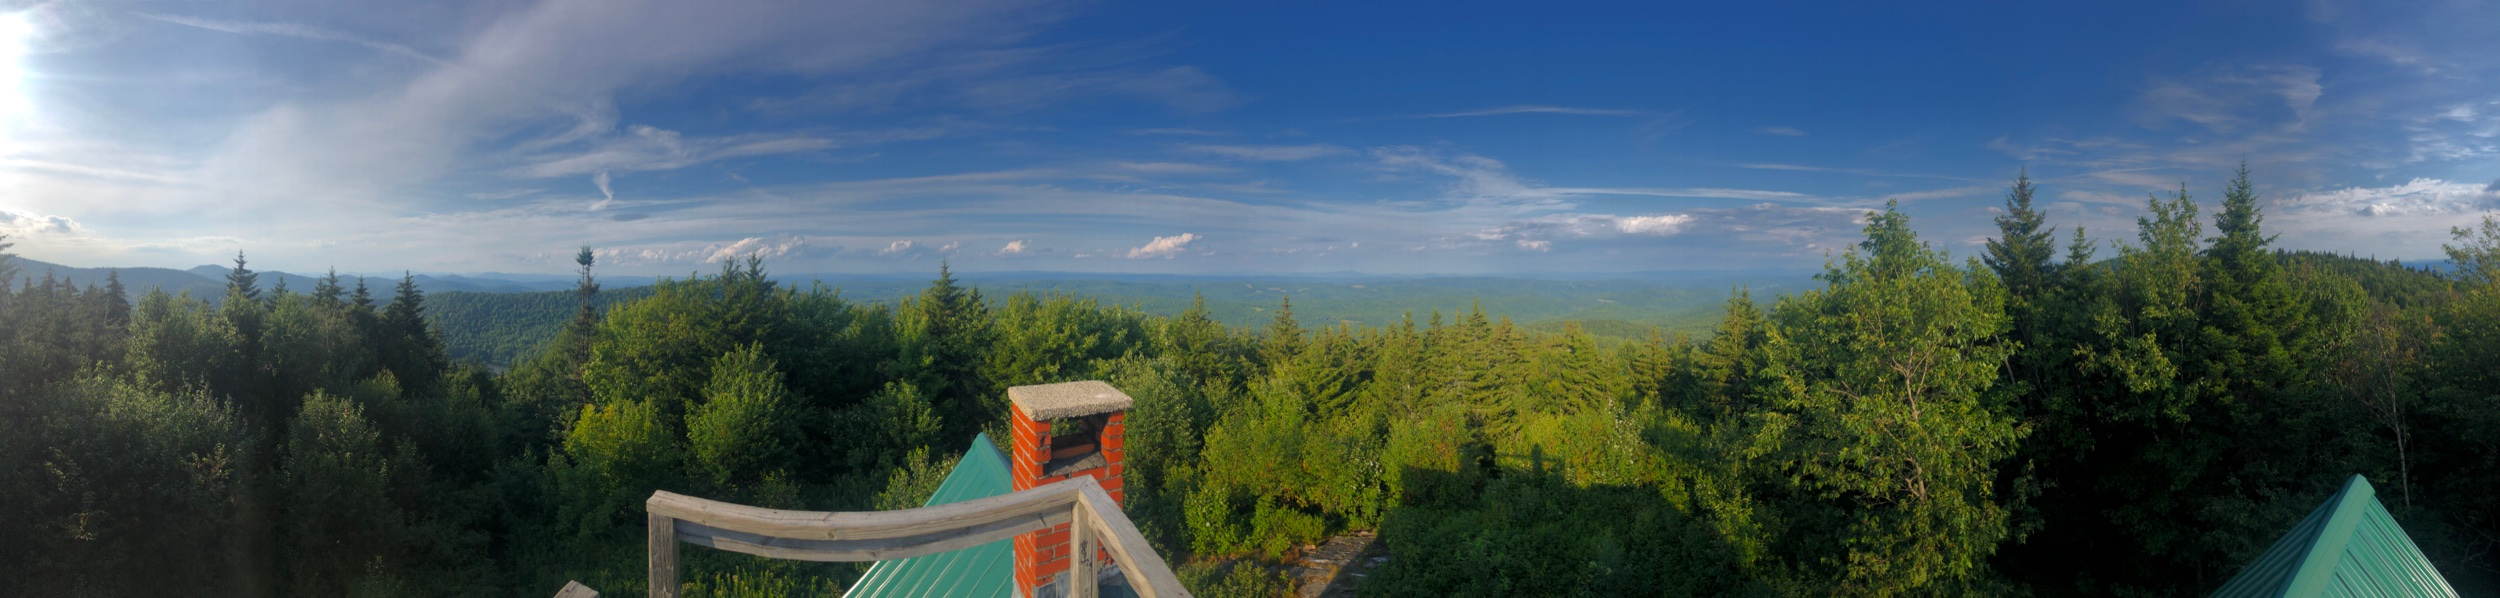 The View from Atop The Lookout